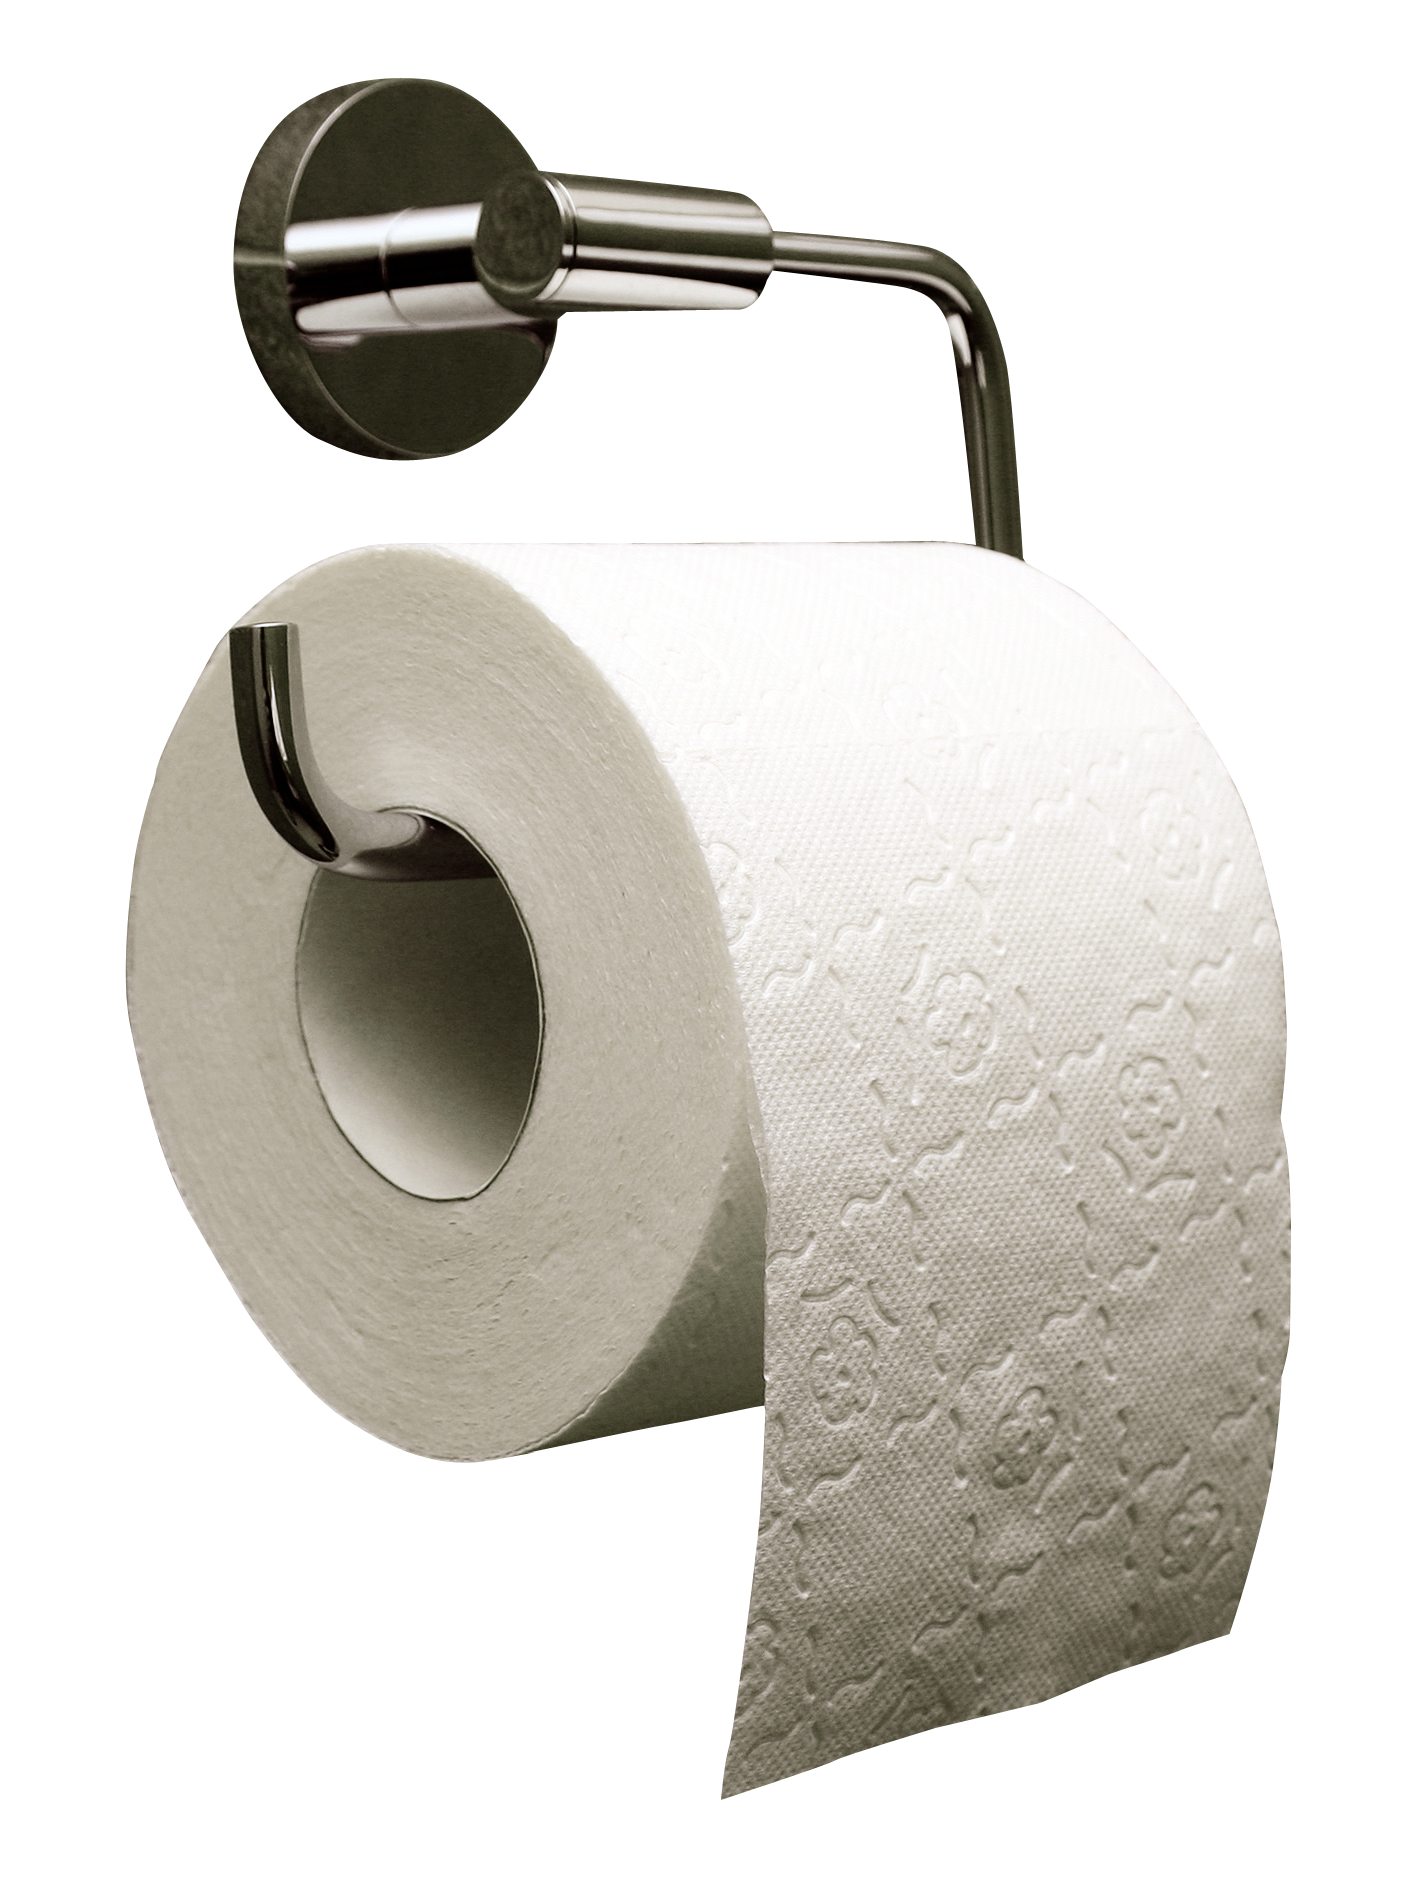 Toilet Paper Roll Png Image Toilet Paper Toilet Paper Roll Paper